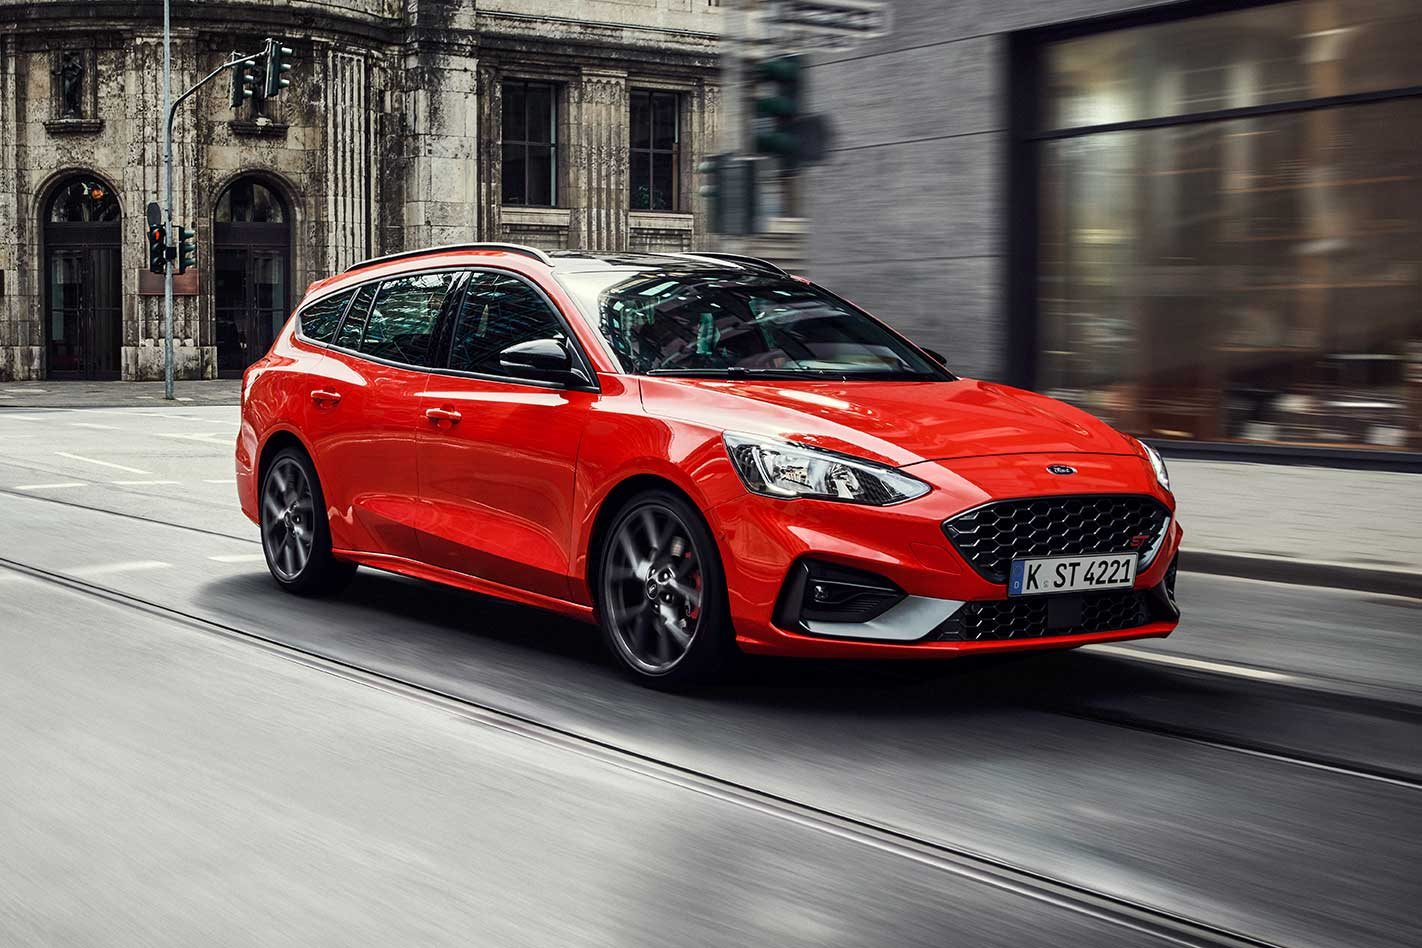 2020 Ford Focus ST Wagon: Image Gallery